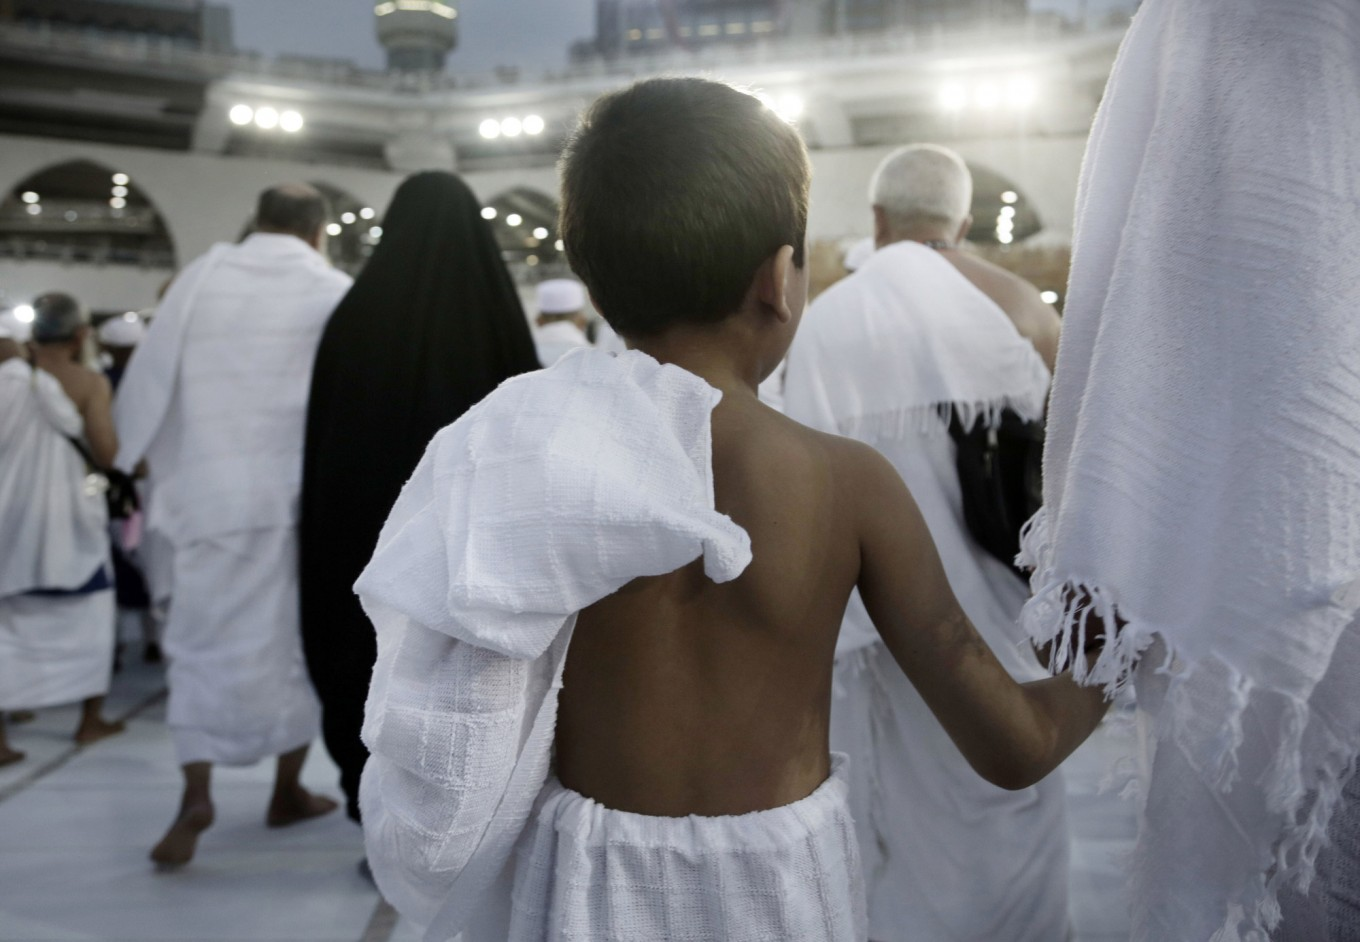 A child holds on to his father as he circles the Kaaba, Islam's holiest shrine, at the Grand Mosque in the Muslim holy city of Mecca, Saudi Arabia, Thursday, Sept. 8, 2016. Muslim pilgrims have begun arriving at the holiest sites in Islam ahead of the annual hajj pilgrimage in Saudi Arabia, with some weeping with their hands outstretched for a fleeting touch of the Kaaba. The cube-shaped shrine, at the center of Mecca's Grand Mosque, is the site the world's 1.6 billion Muslims pray toward five times a day. AP Photo/Nariman El-Mofty